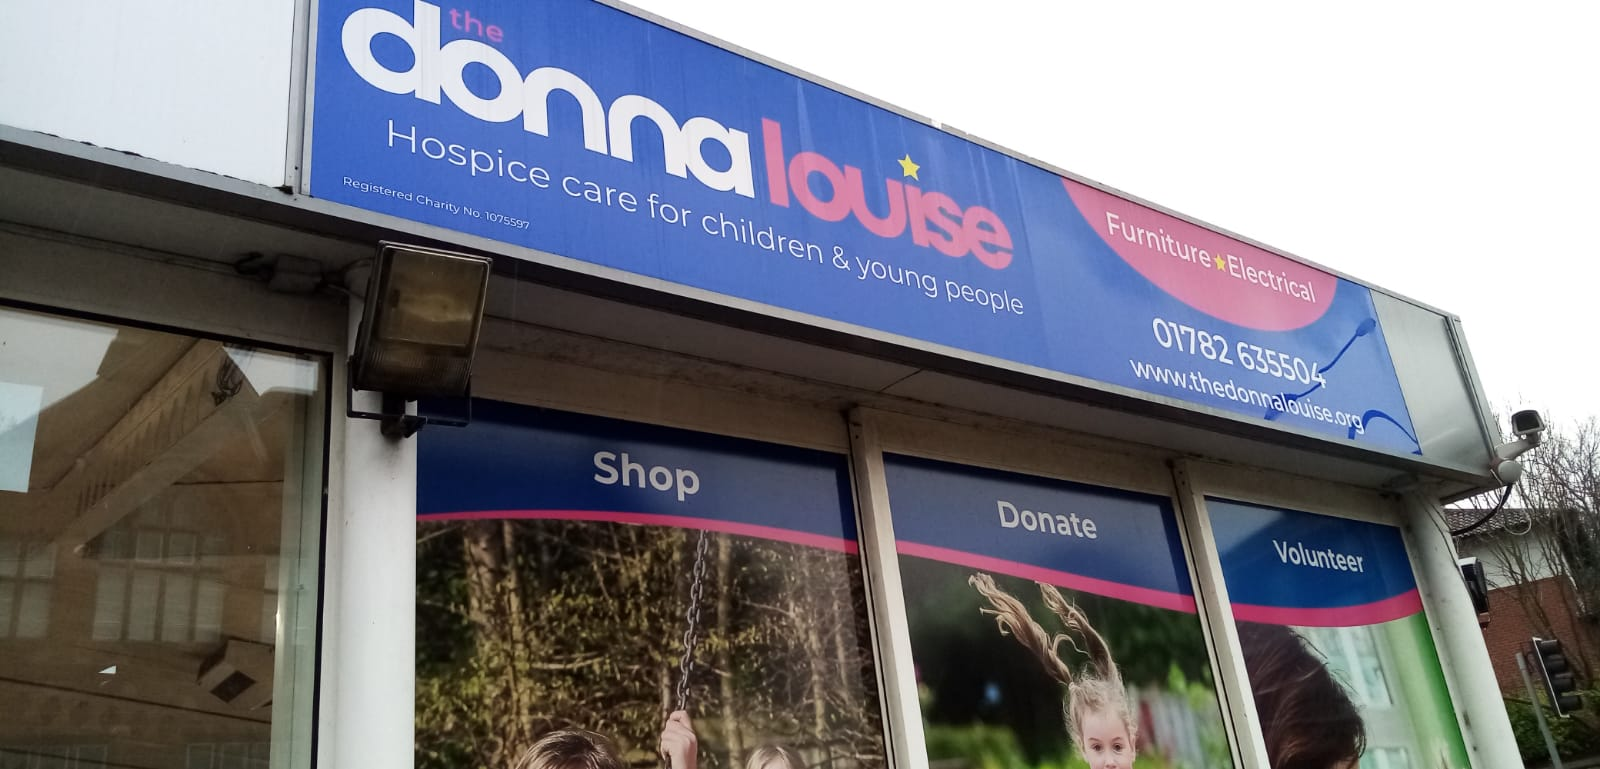 The Donna Louise Children's Hospice Shop Sign